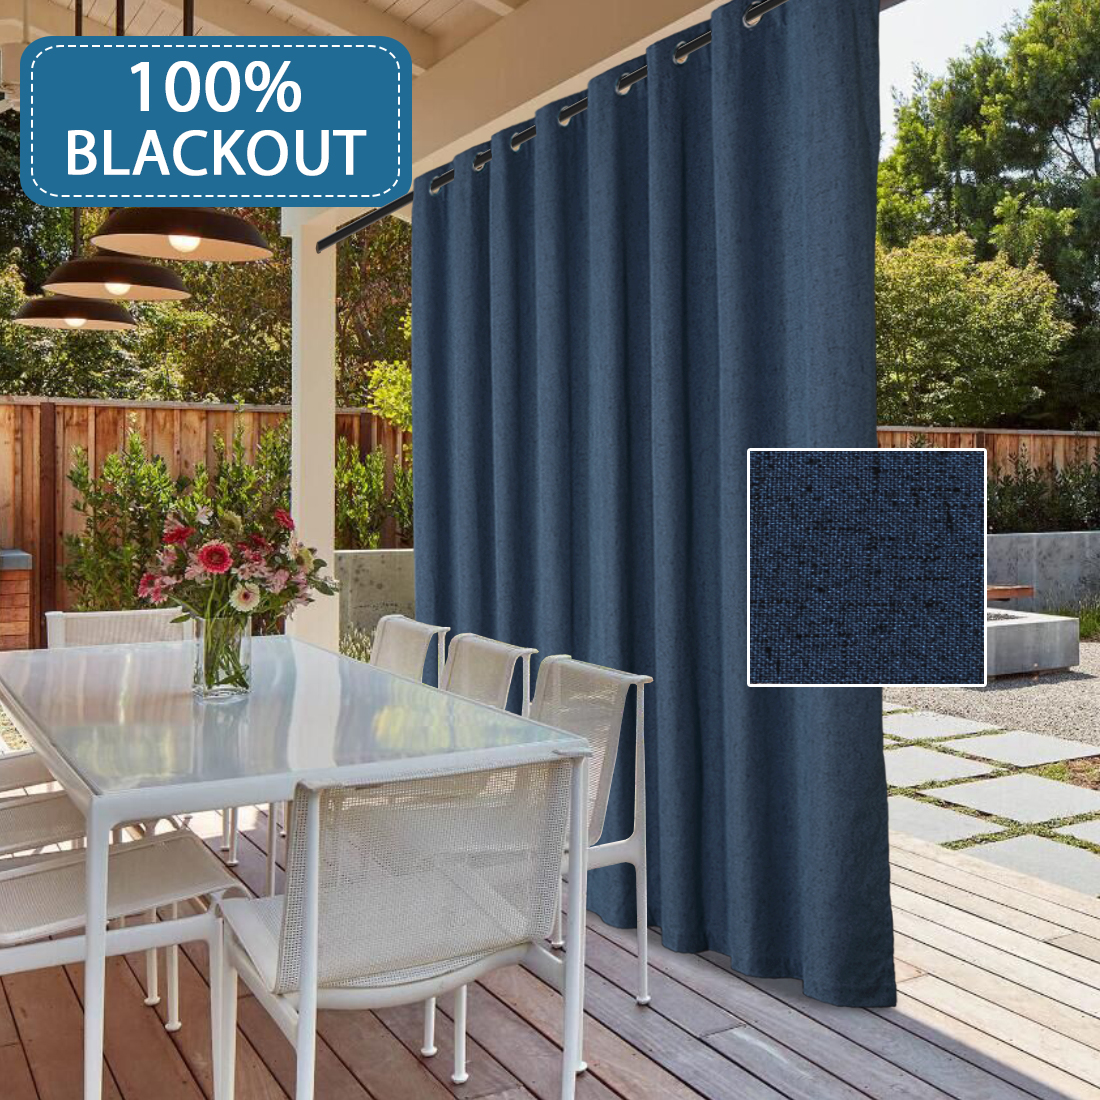 extra long and wide outdoor 100 blackout curtains rich textured linen waterproof patio door panel anti rust grommet home fashion window panel drapes